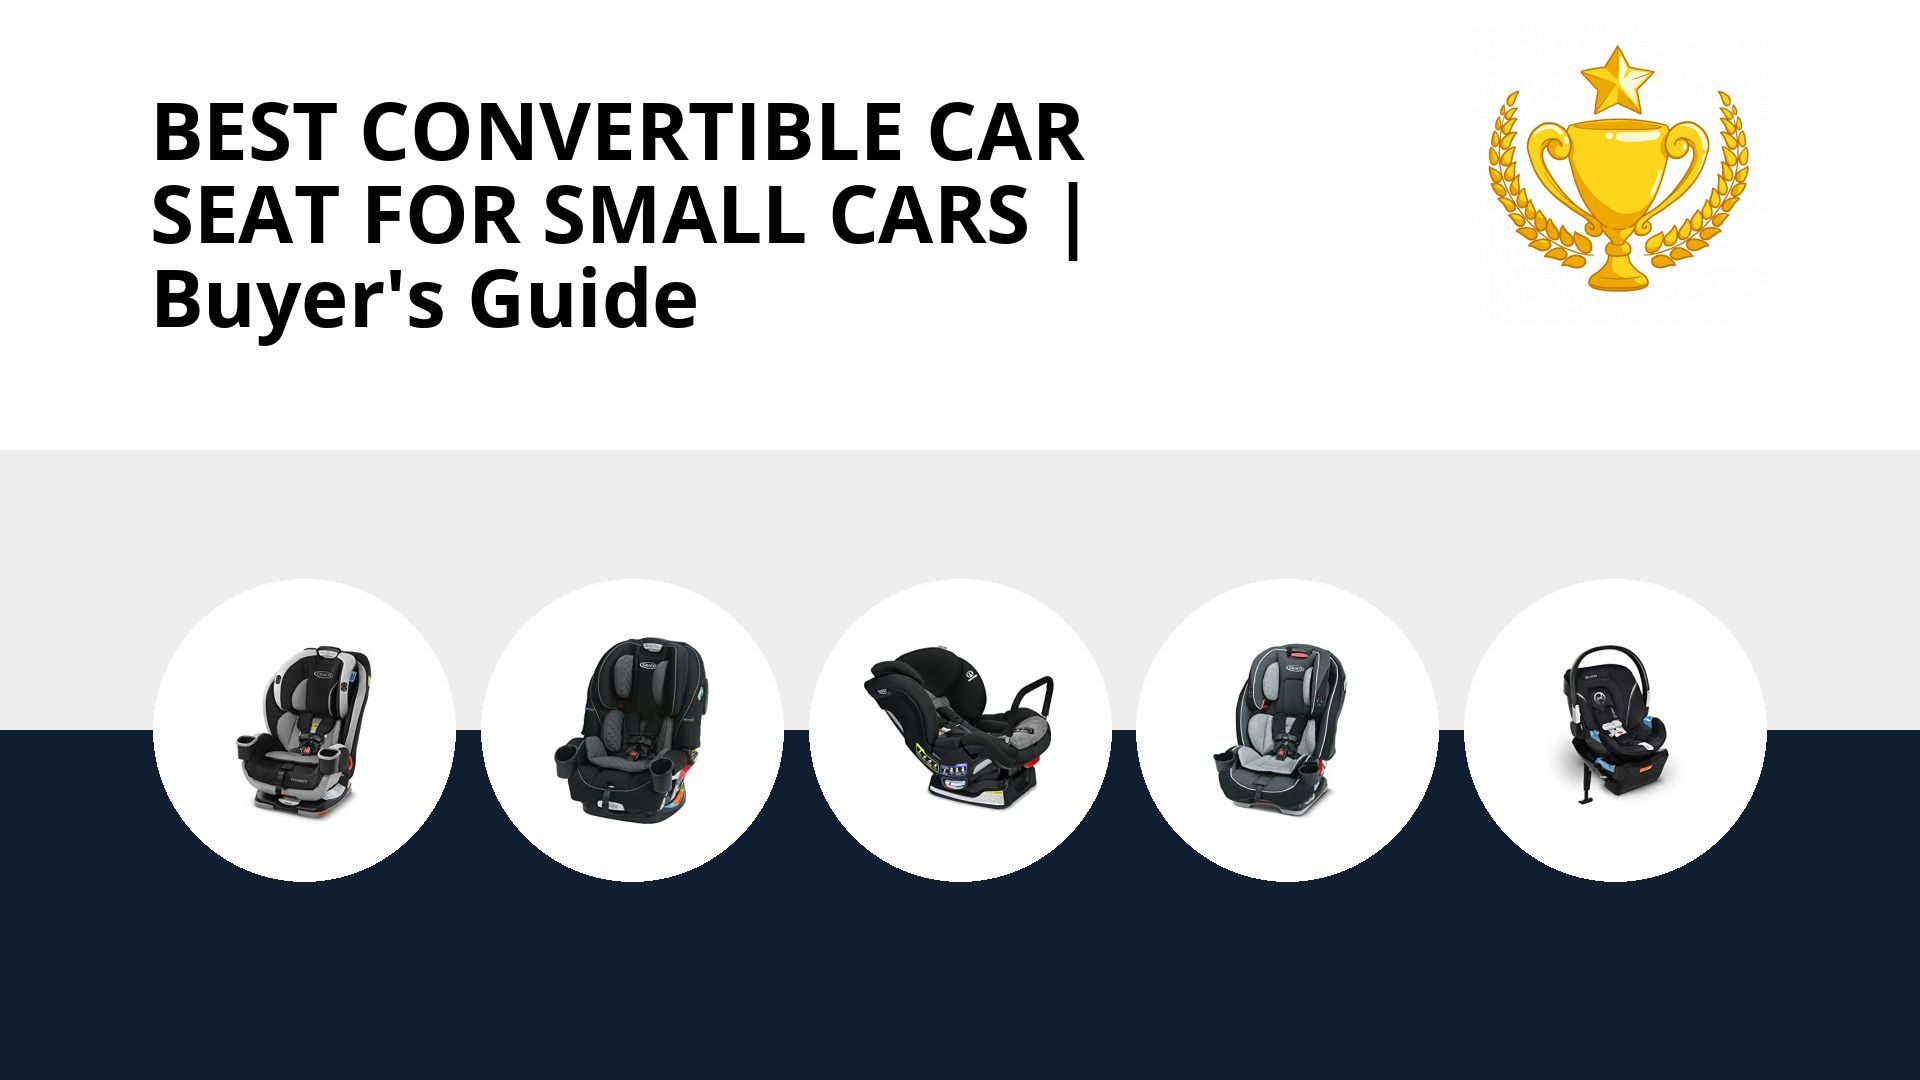 Best Convertible Car Seat For Small Cars: image